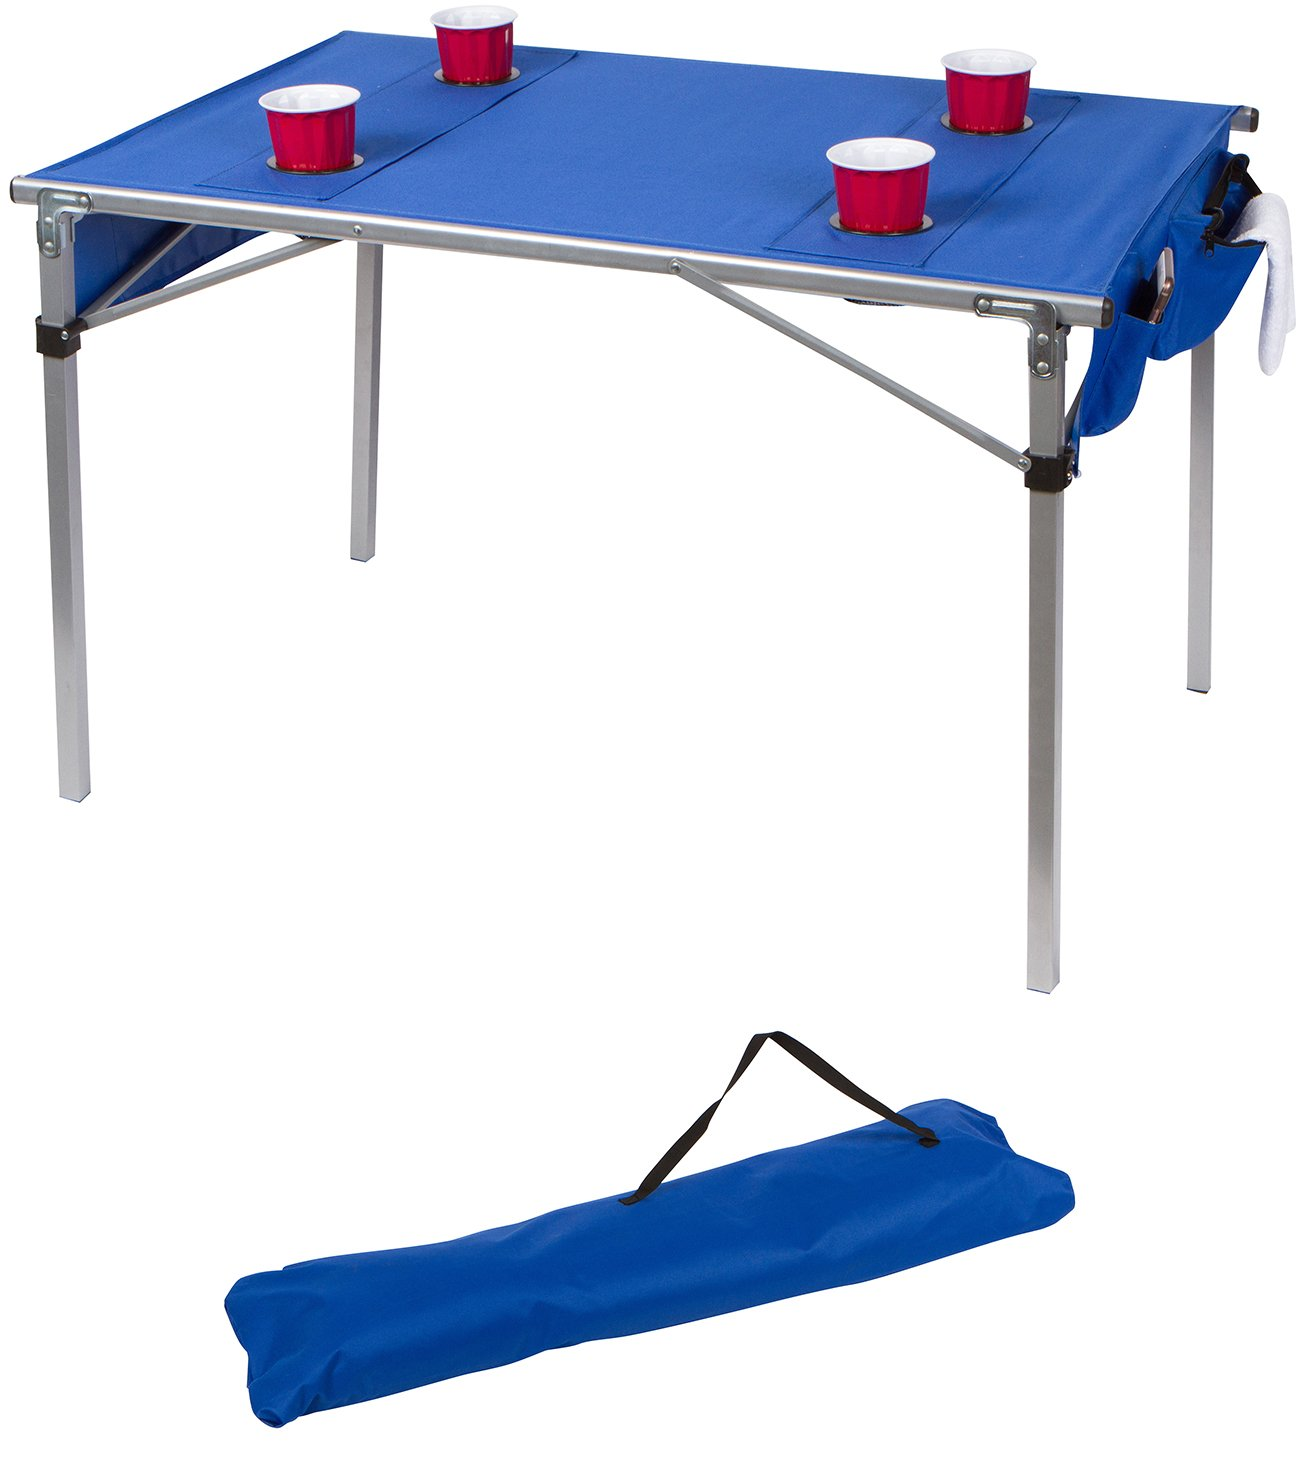 42'' Portable Lightweight Soft Top Folding Table For Camping and Travel With Carry Bag by Trademark Innovations (Blue)